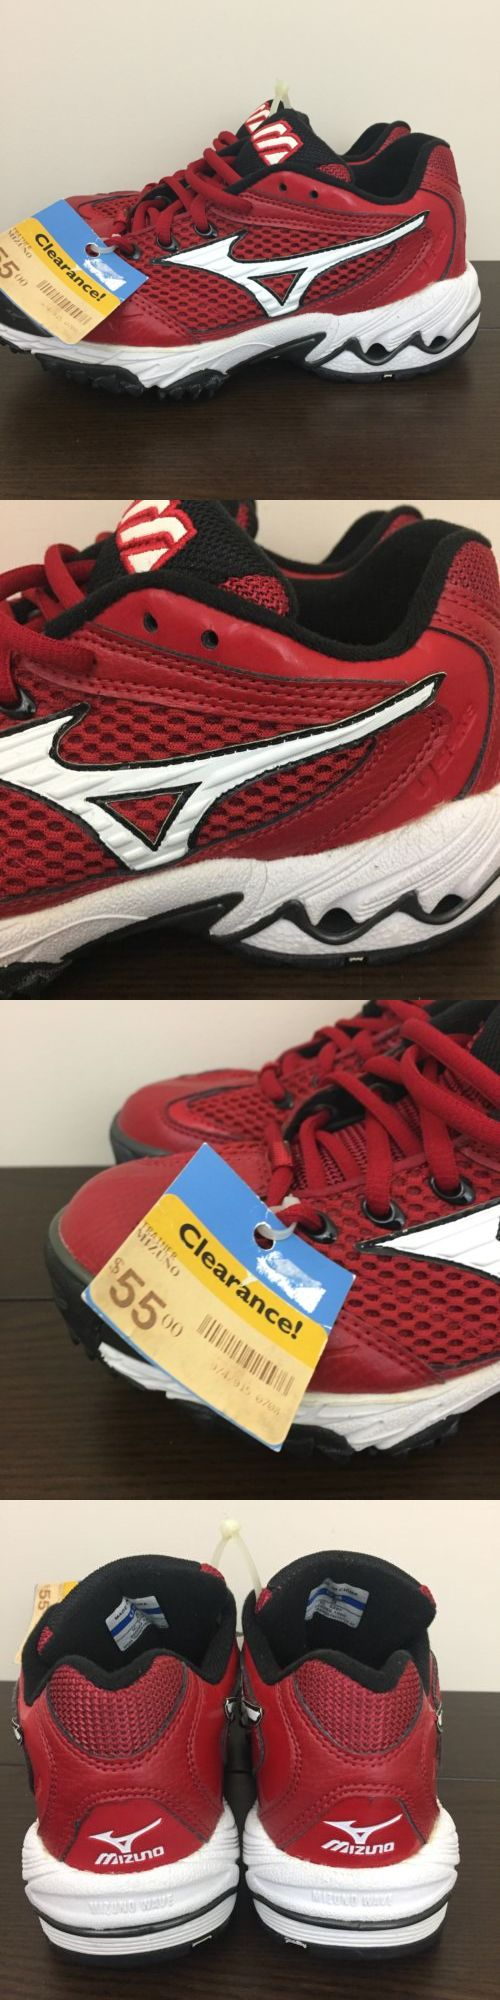 Womens 159060: New Mizuno Womens Speed Trainer Fastpitch Softball Shoes Red White Size 5 -> BUY IT NOW ONLY: $46.14 on eBay!